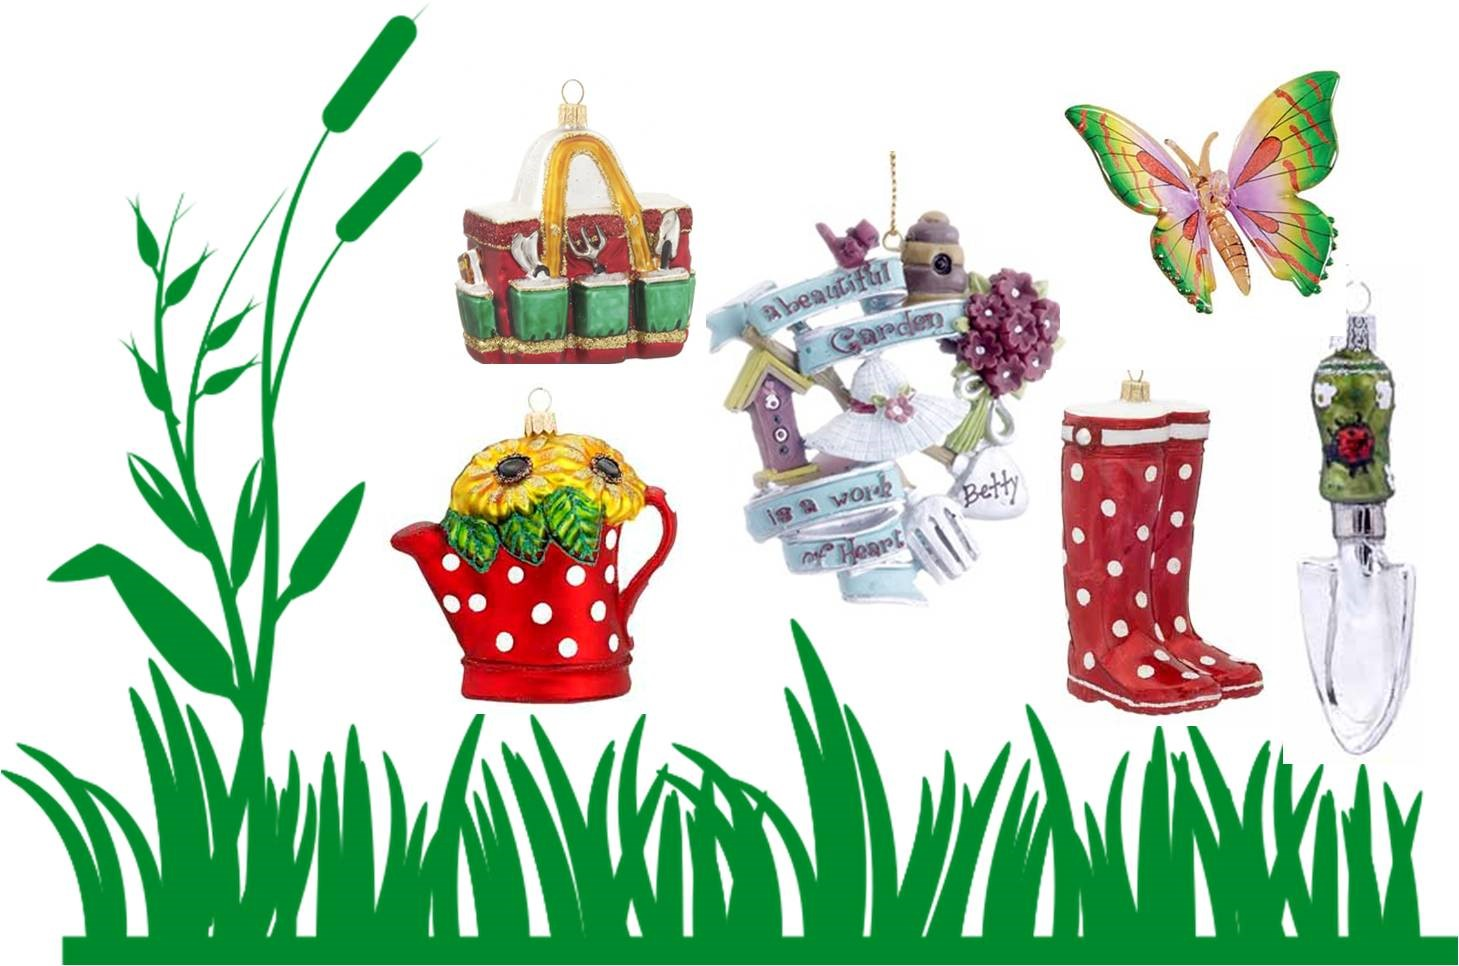 A collection of spring ornaments similar to the DIY cloche.